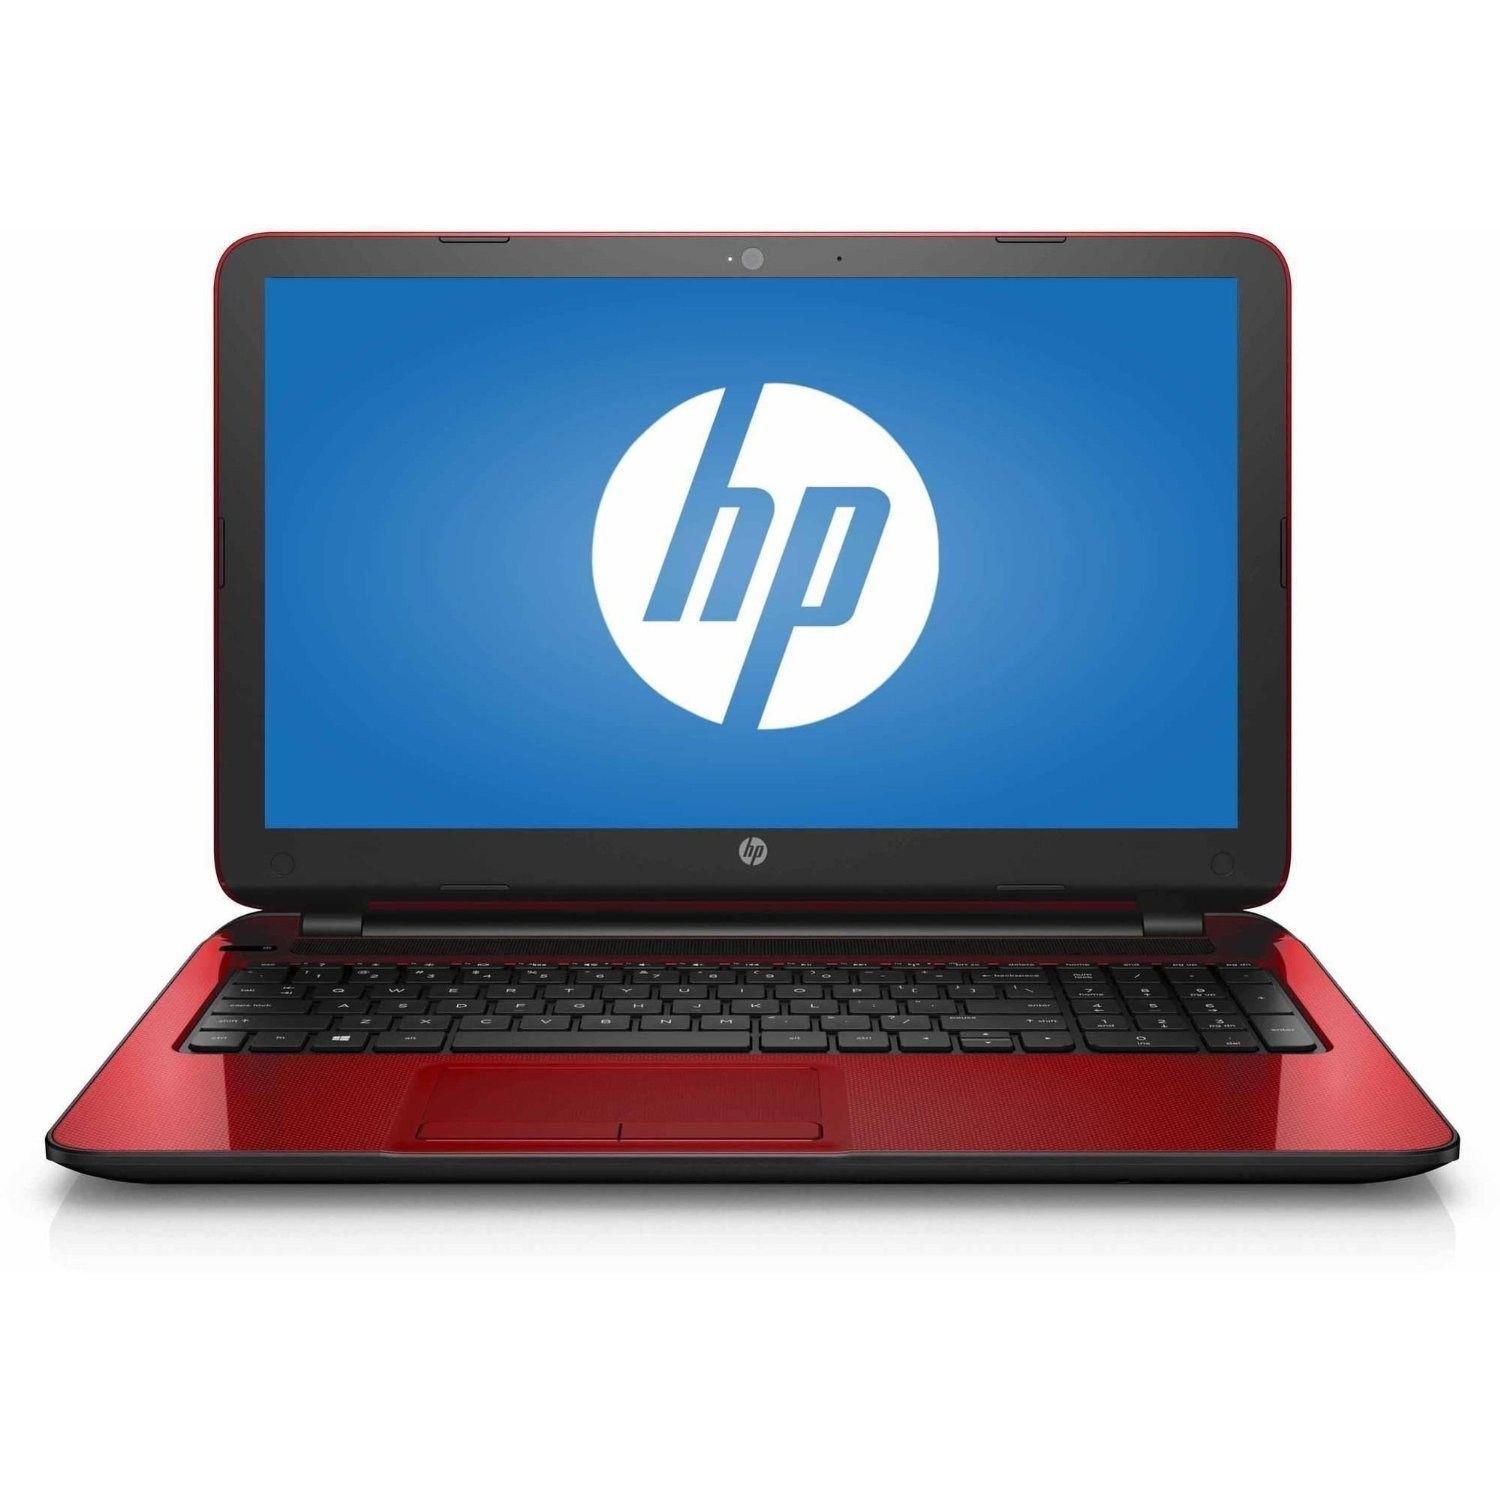 "HP 15.6"" Laptop Touchscreen , Pentium® Quad-Core N3530 2.16GHz 500GB 4GB RAM, HD Graphics, 802.11ac, DVD, Bluetooth, HDMI, Webcam, Windows 10 - Flyer Red"